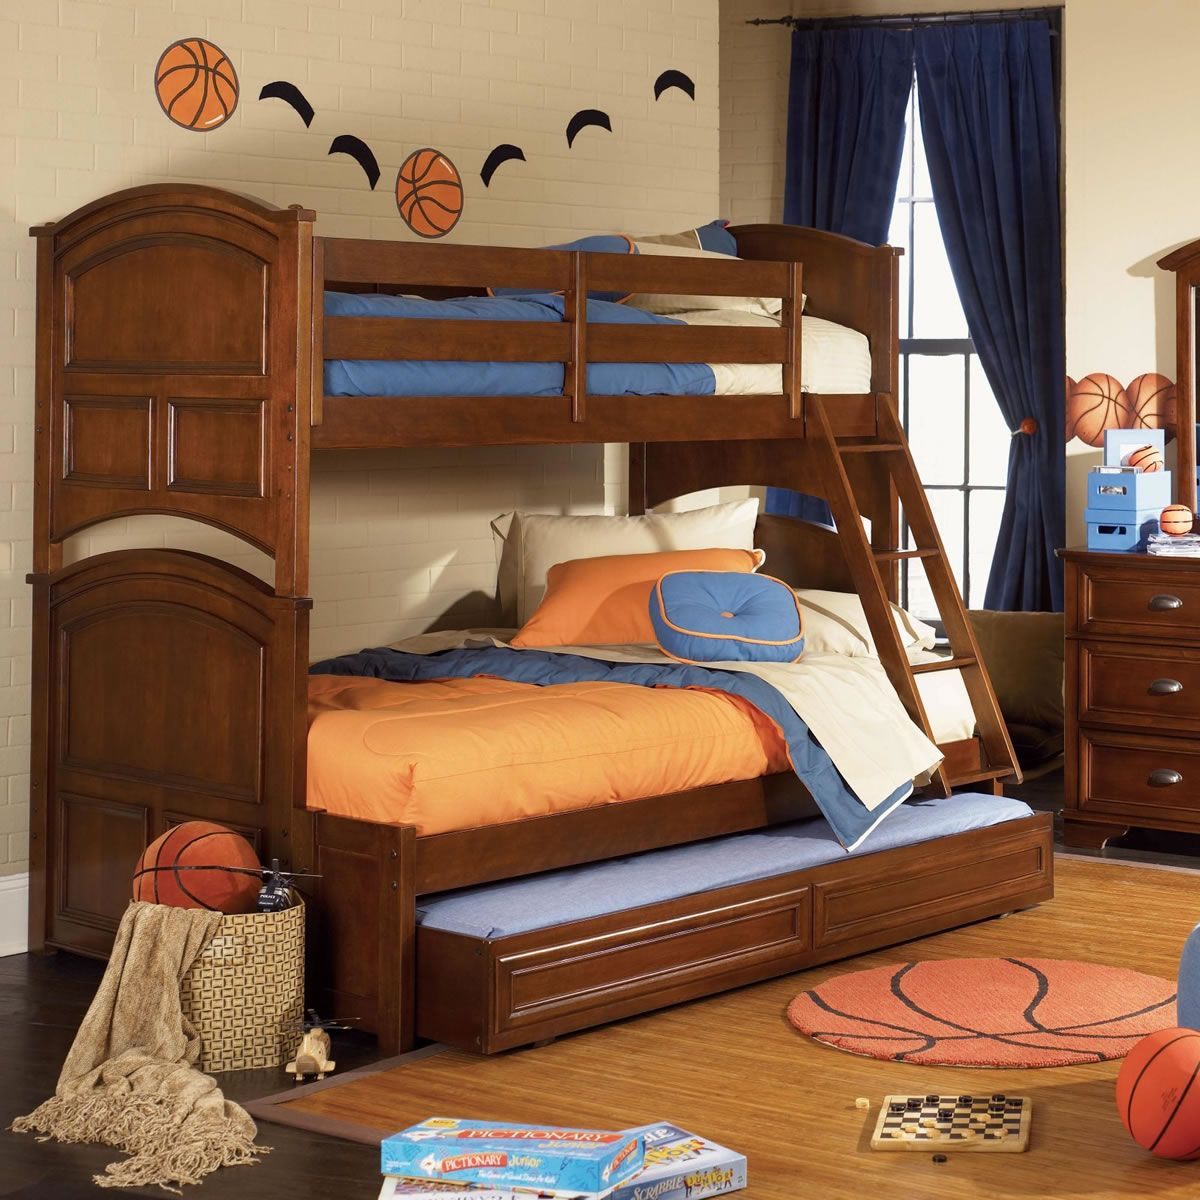 The Difference Between The Twin Over Full Bunk Bed To The Regular Bunk Bed Bunk Bed With Trundle Kids Bunk Beds Twin Bunk Beds